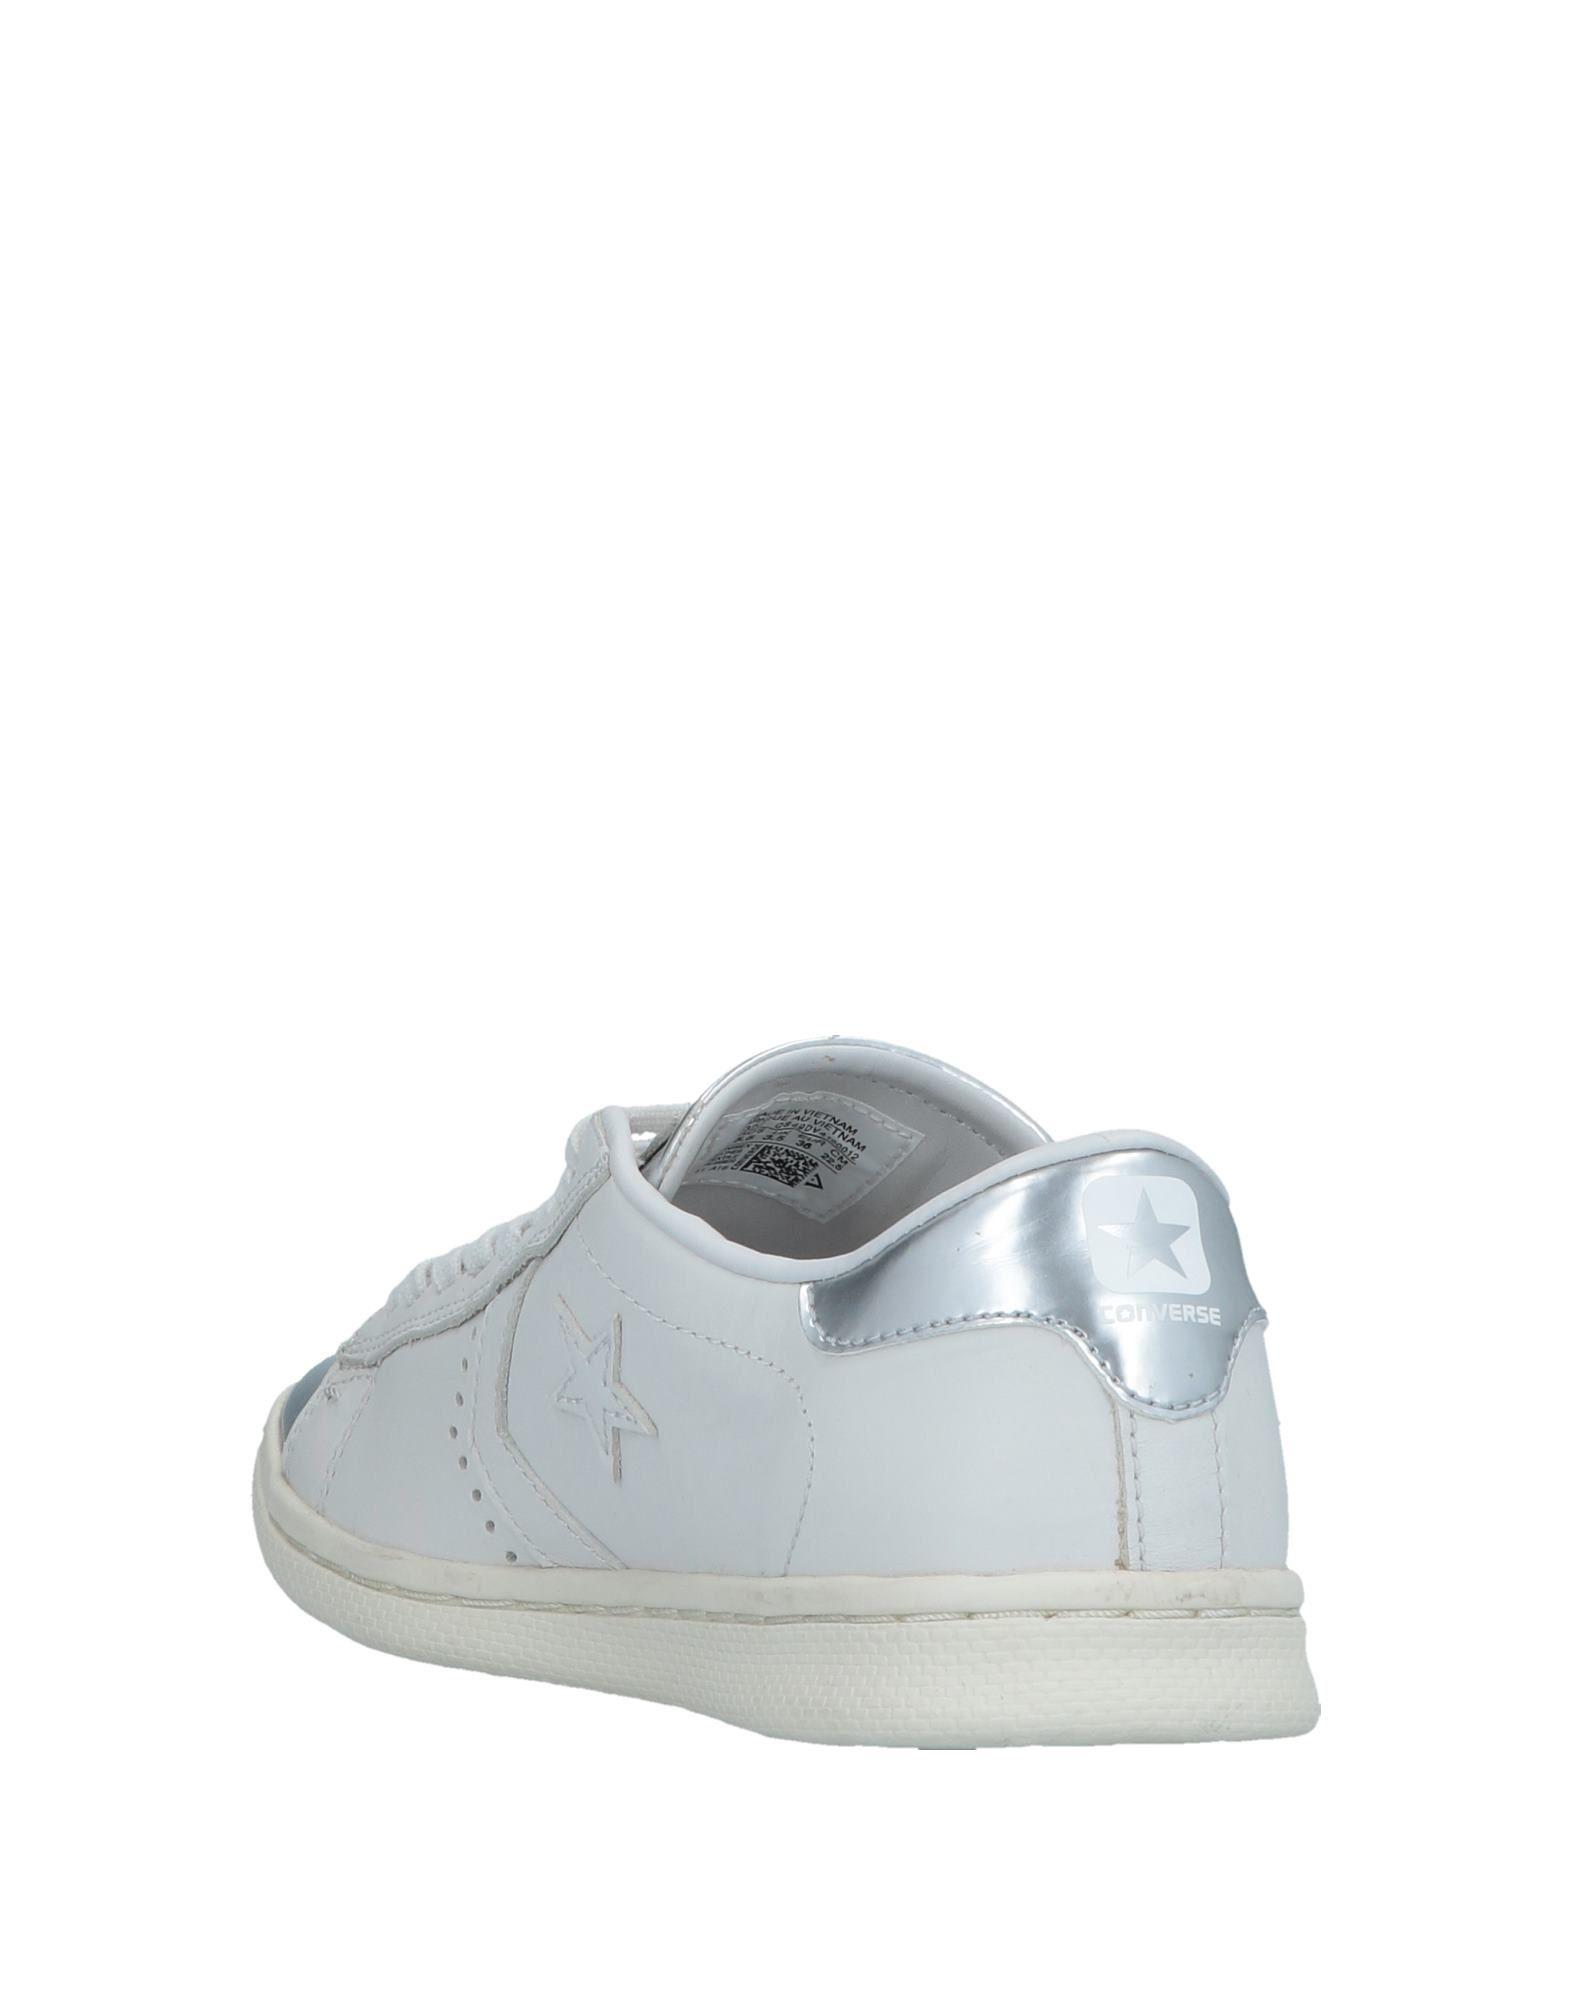 c3417cdfb29154 Converse Cons Low-tops   Sneakers in Metallic - Lyst